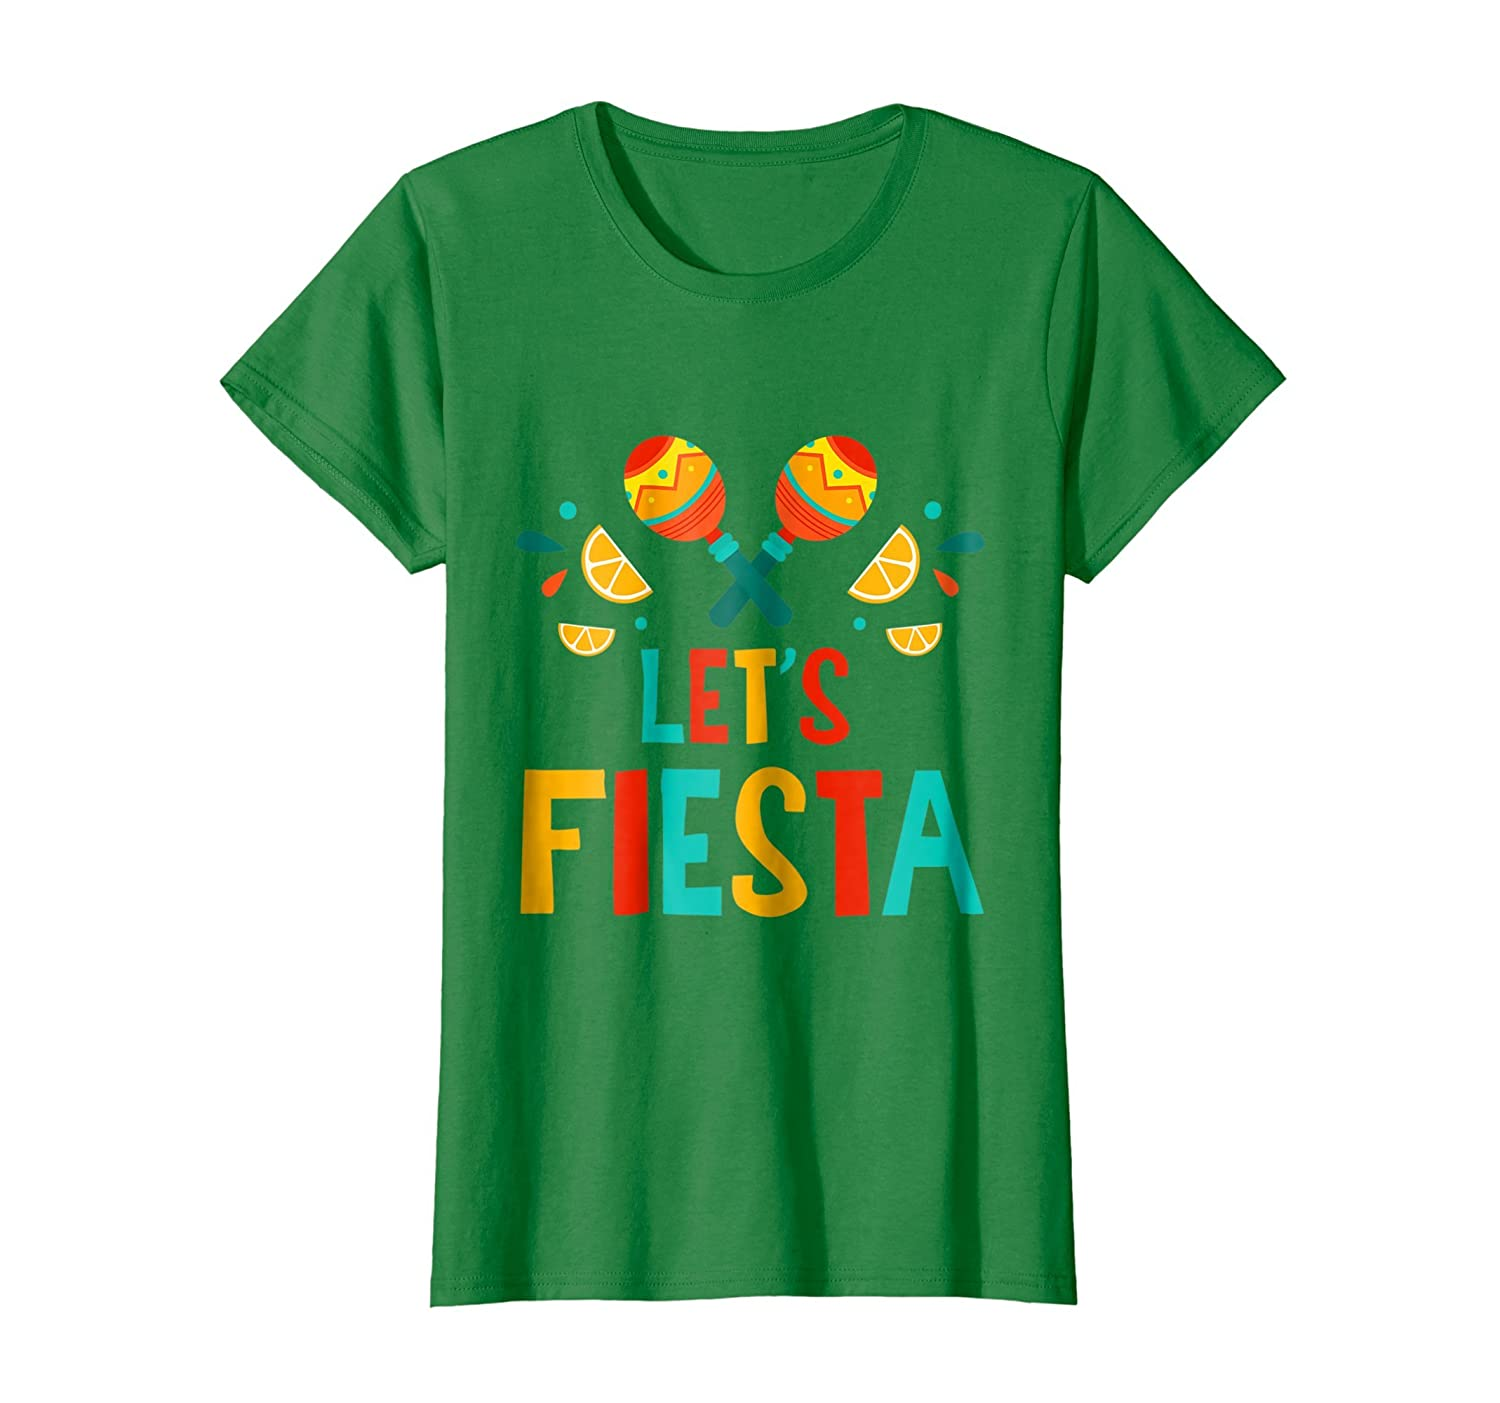 Fiesta – Funny Cute Mexico Mexican Party T Shirt 07a12510c